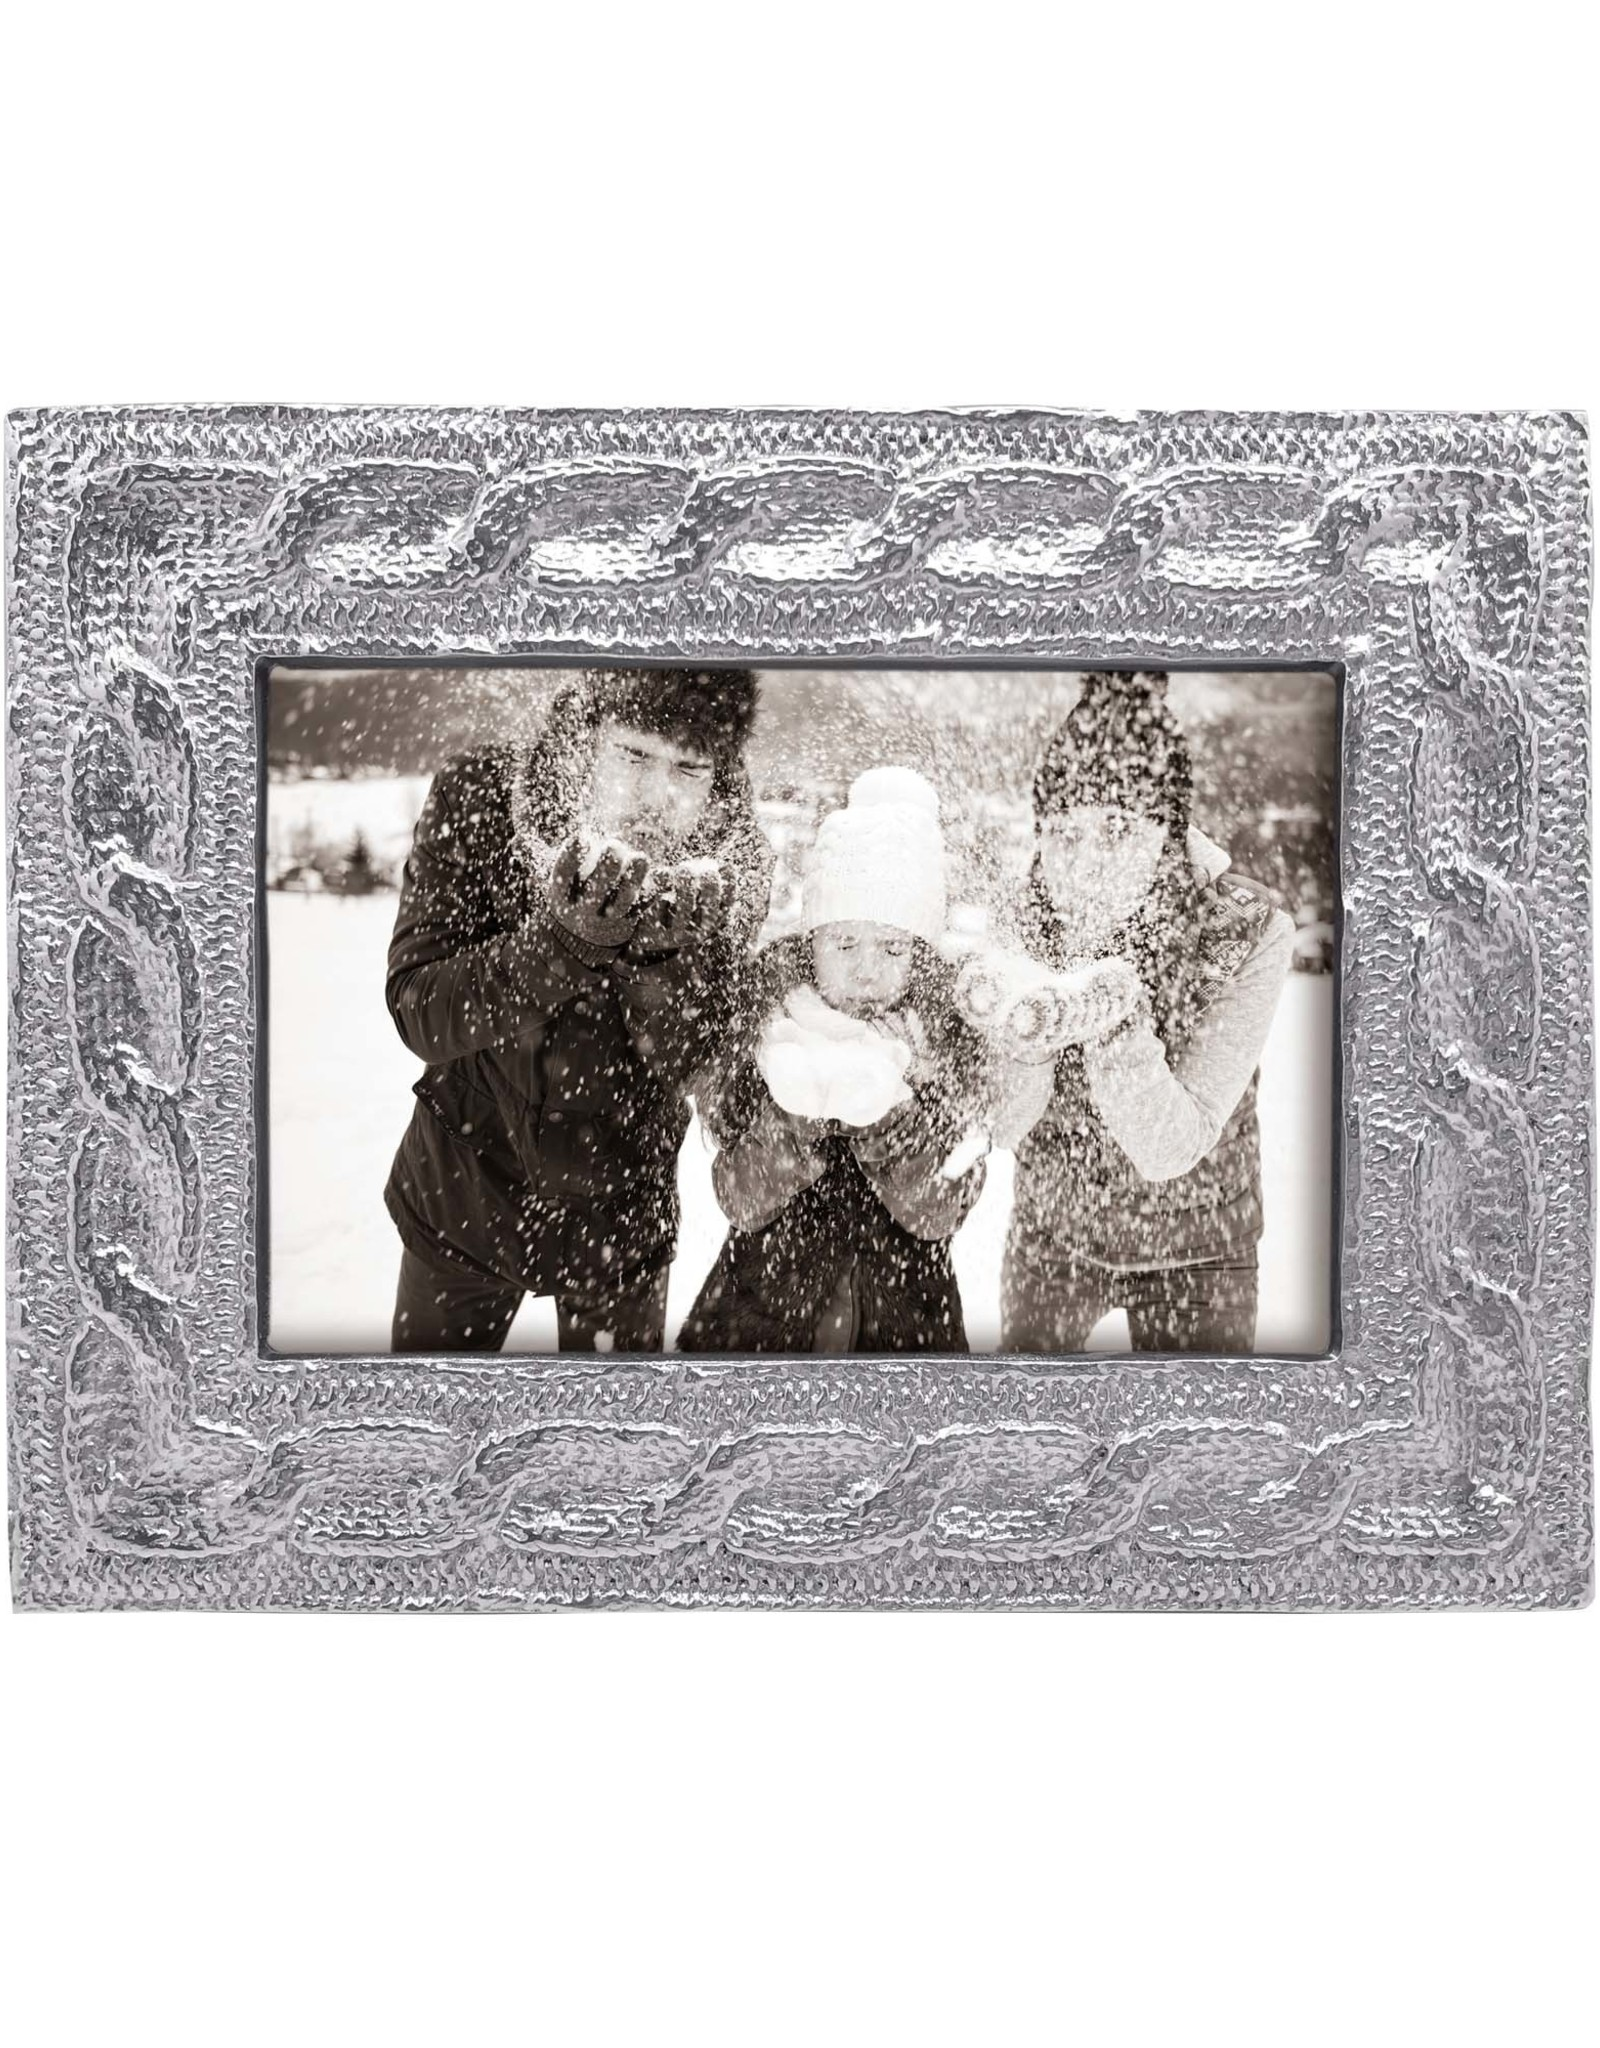 Mariposa Frame Cable Knit 4x6